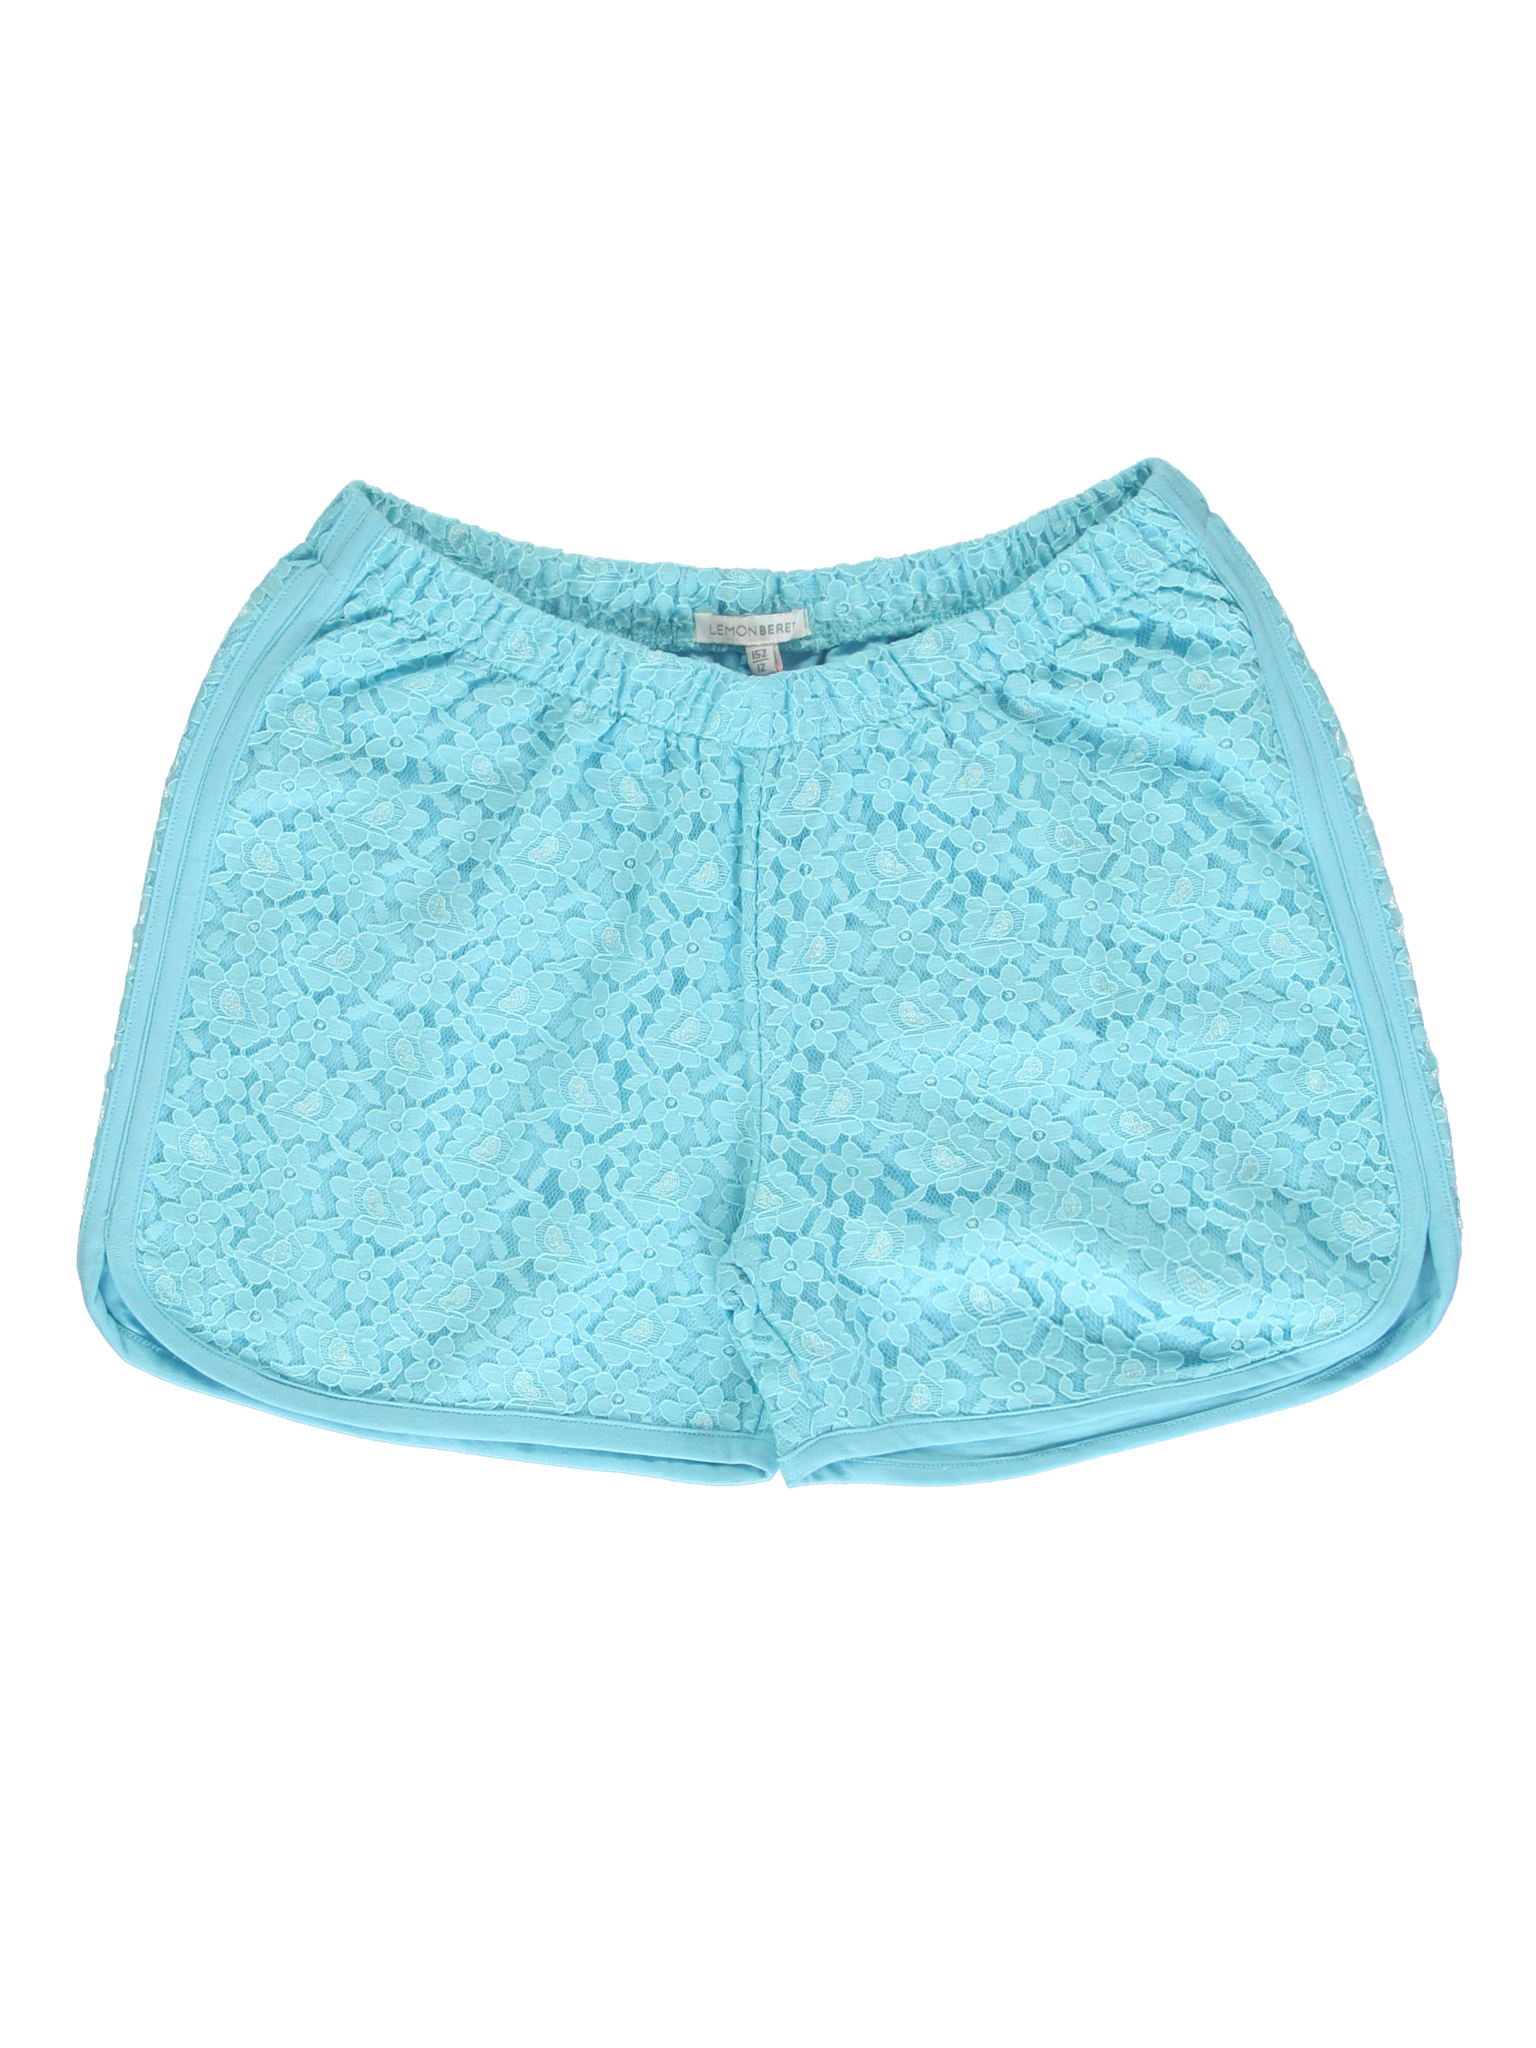 All Brands | Summerproducts Teen Girls | Shorts | 12 pcs/box